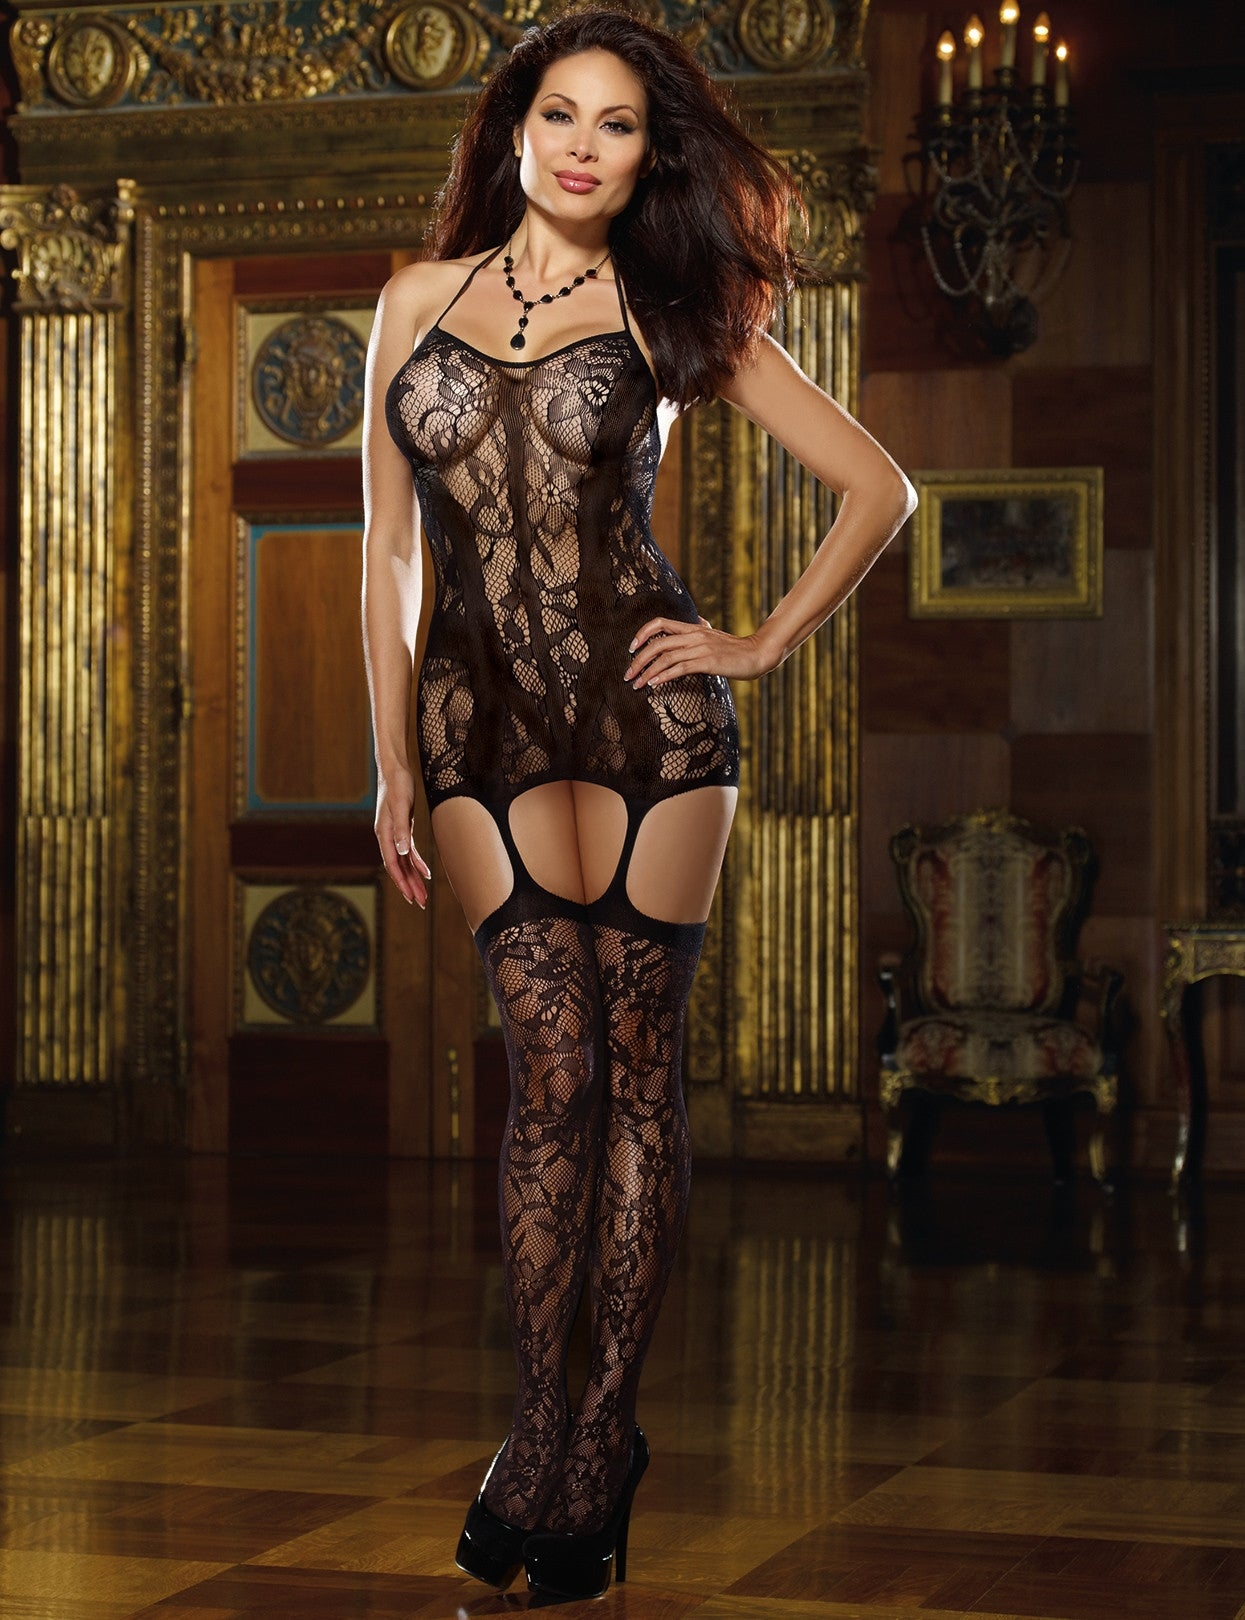 Plus Size Trinidad Hosiery Garter Dress - just damn sexy  - 1